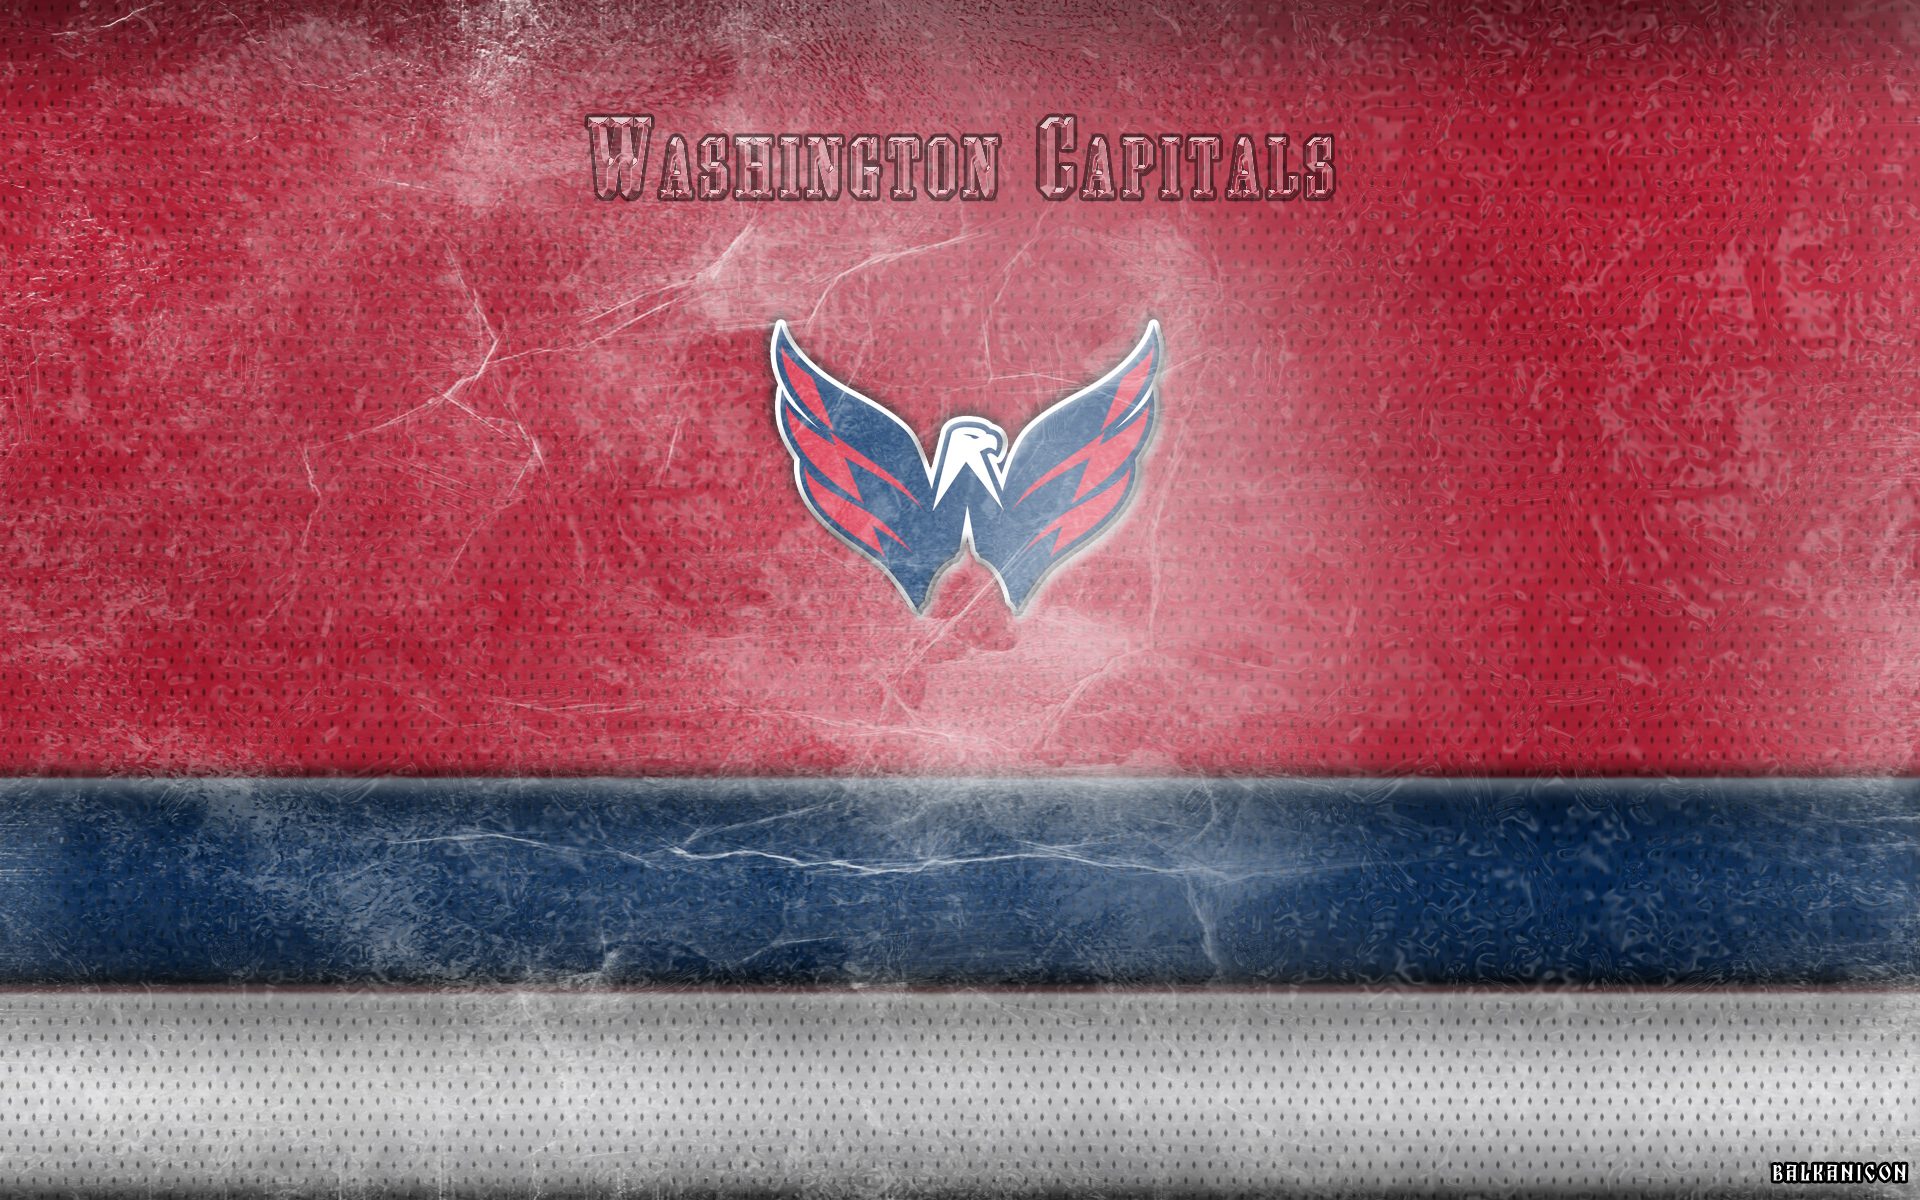 washington capitals wallpaper by balkanicon fan art wallpaper other 1920x1200